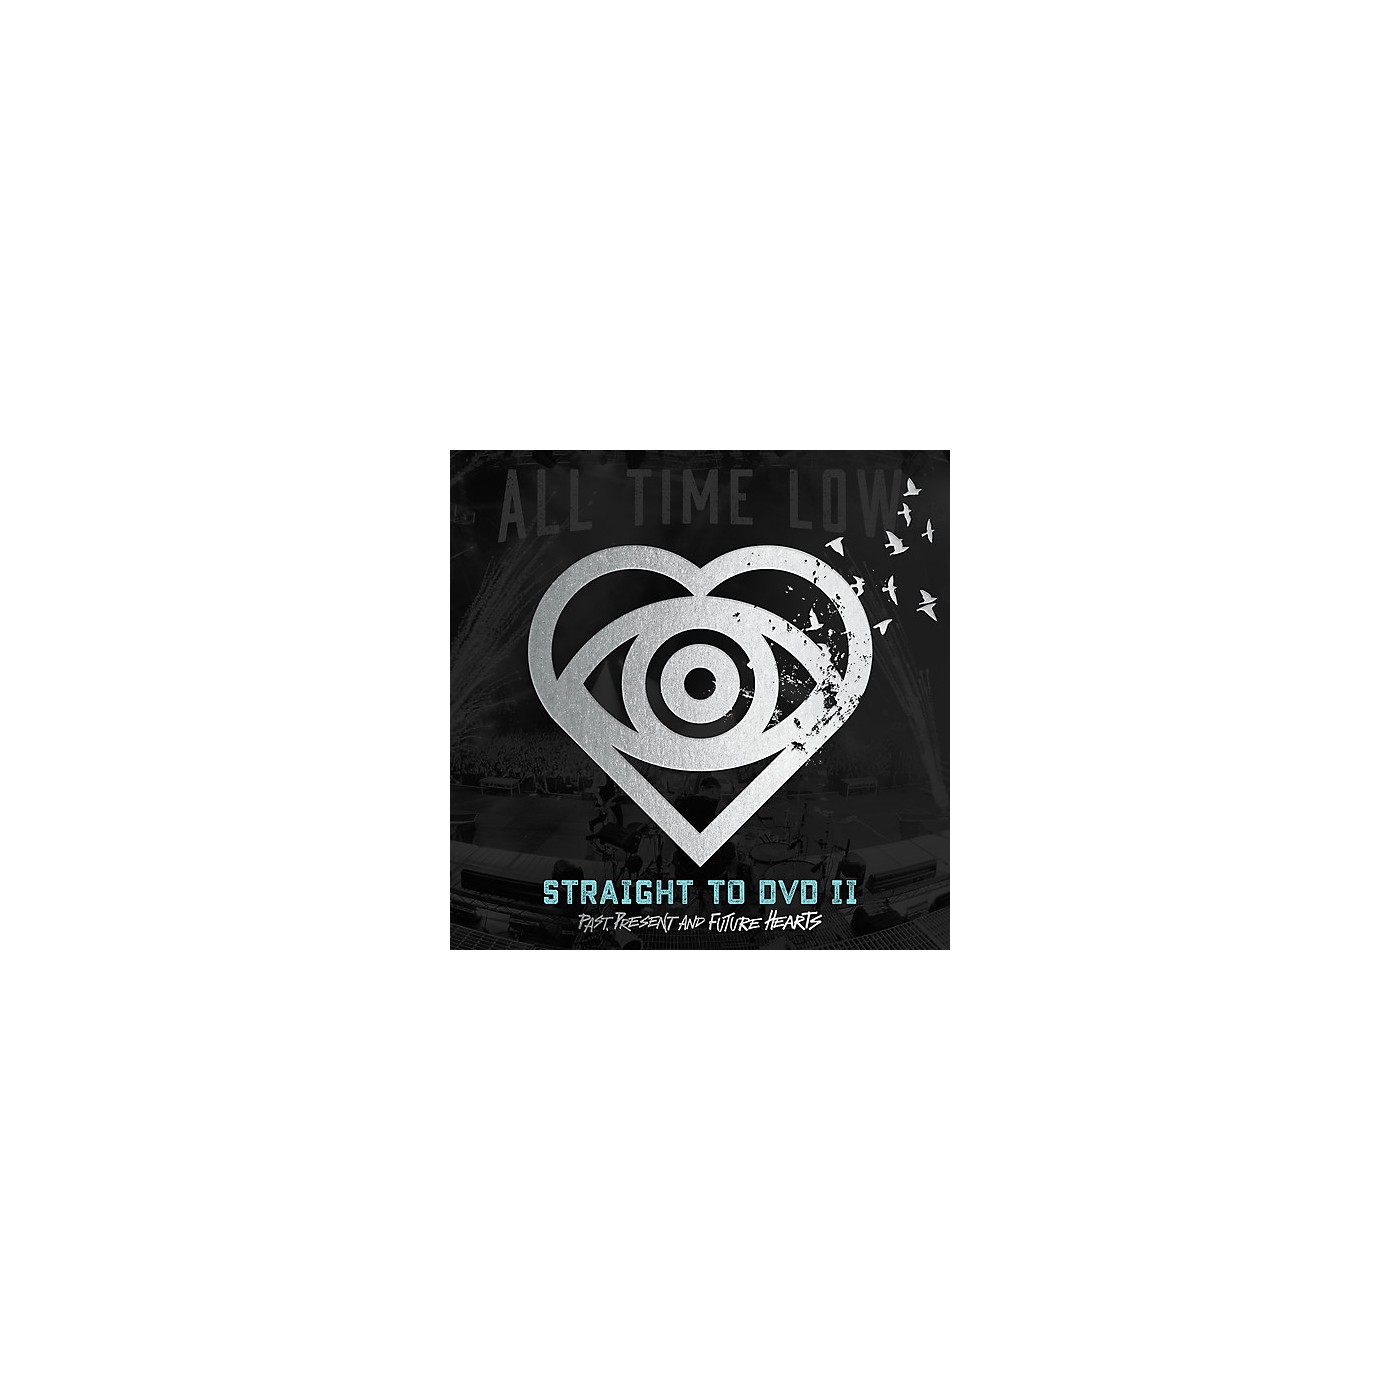 Alliance All Time Low - Straight To Dvd Ii: Past Present & Future Hearts thumbnail